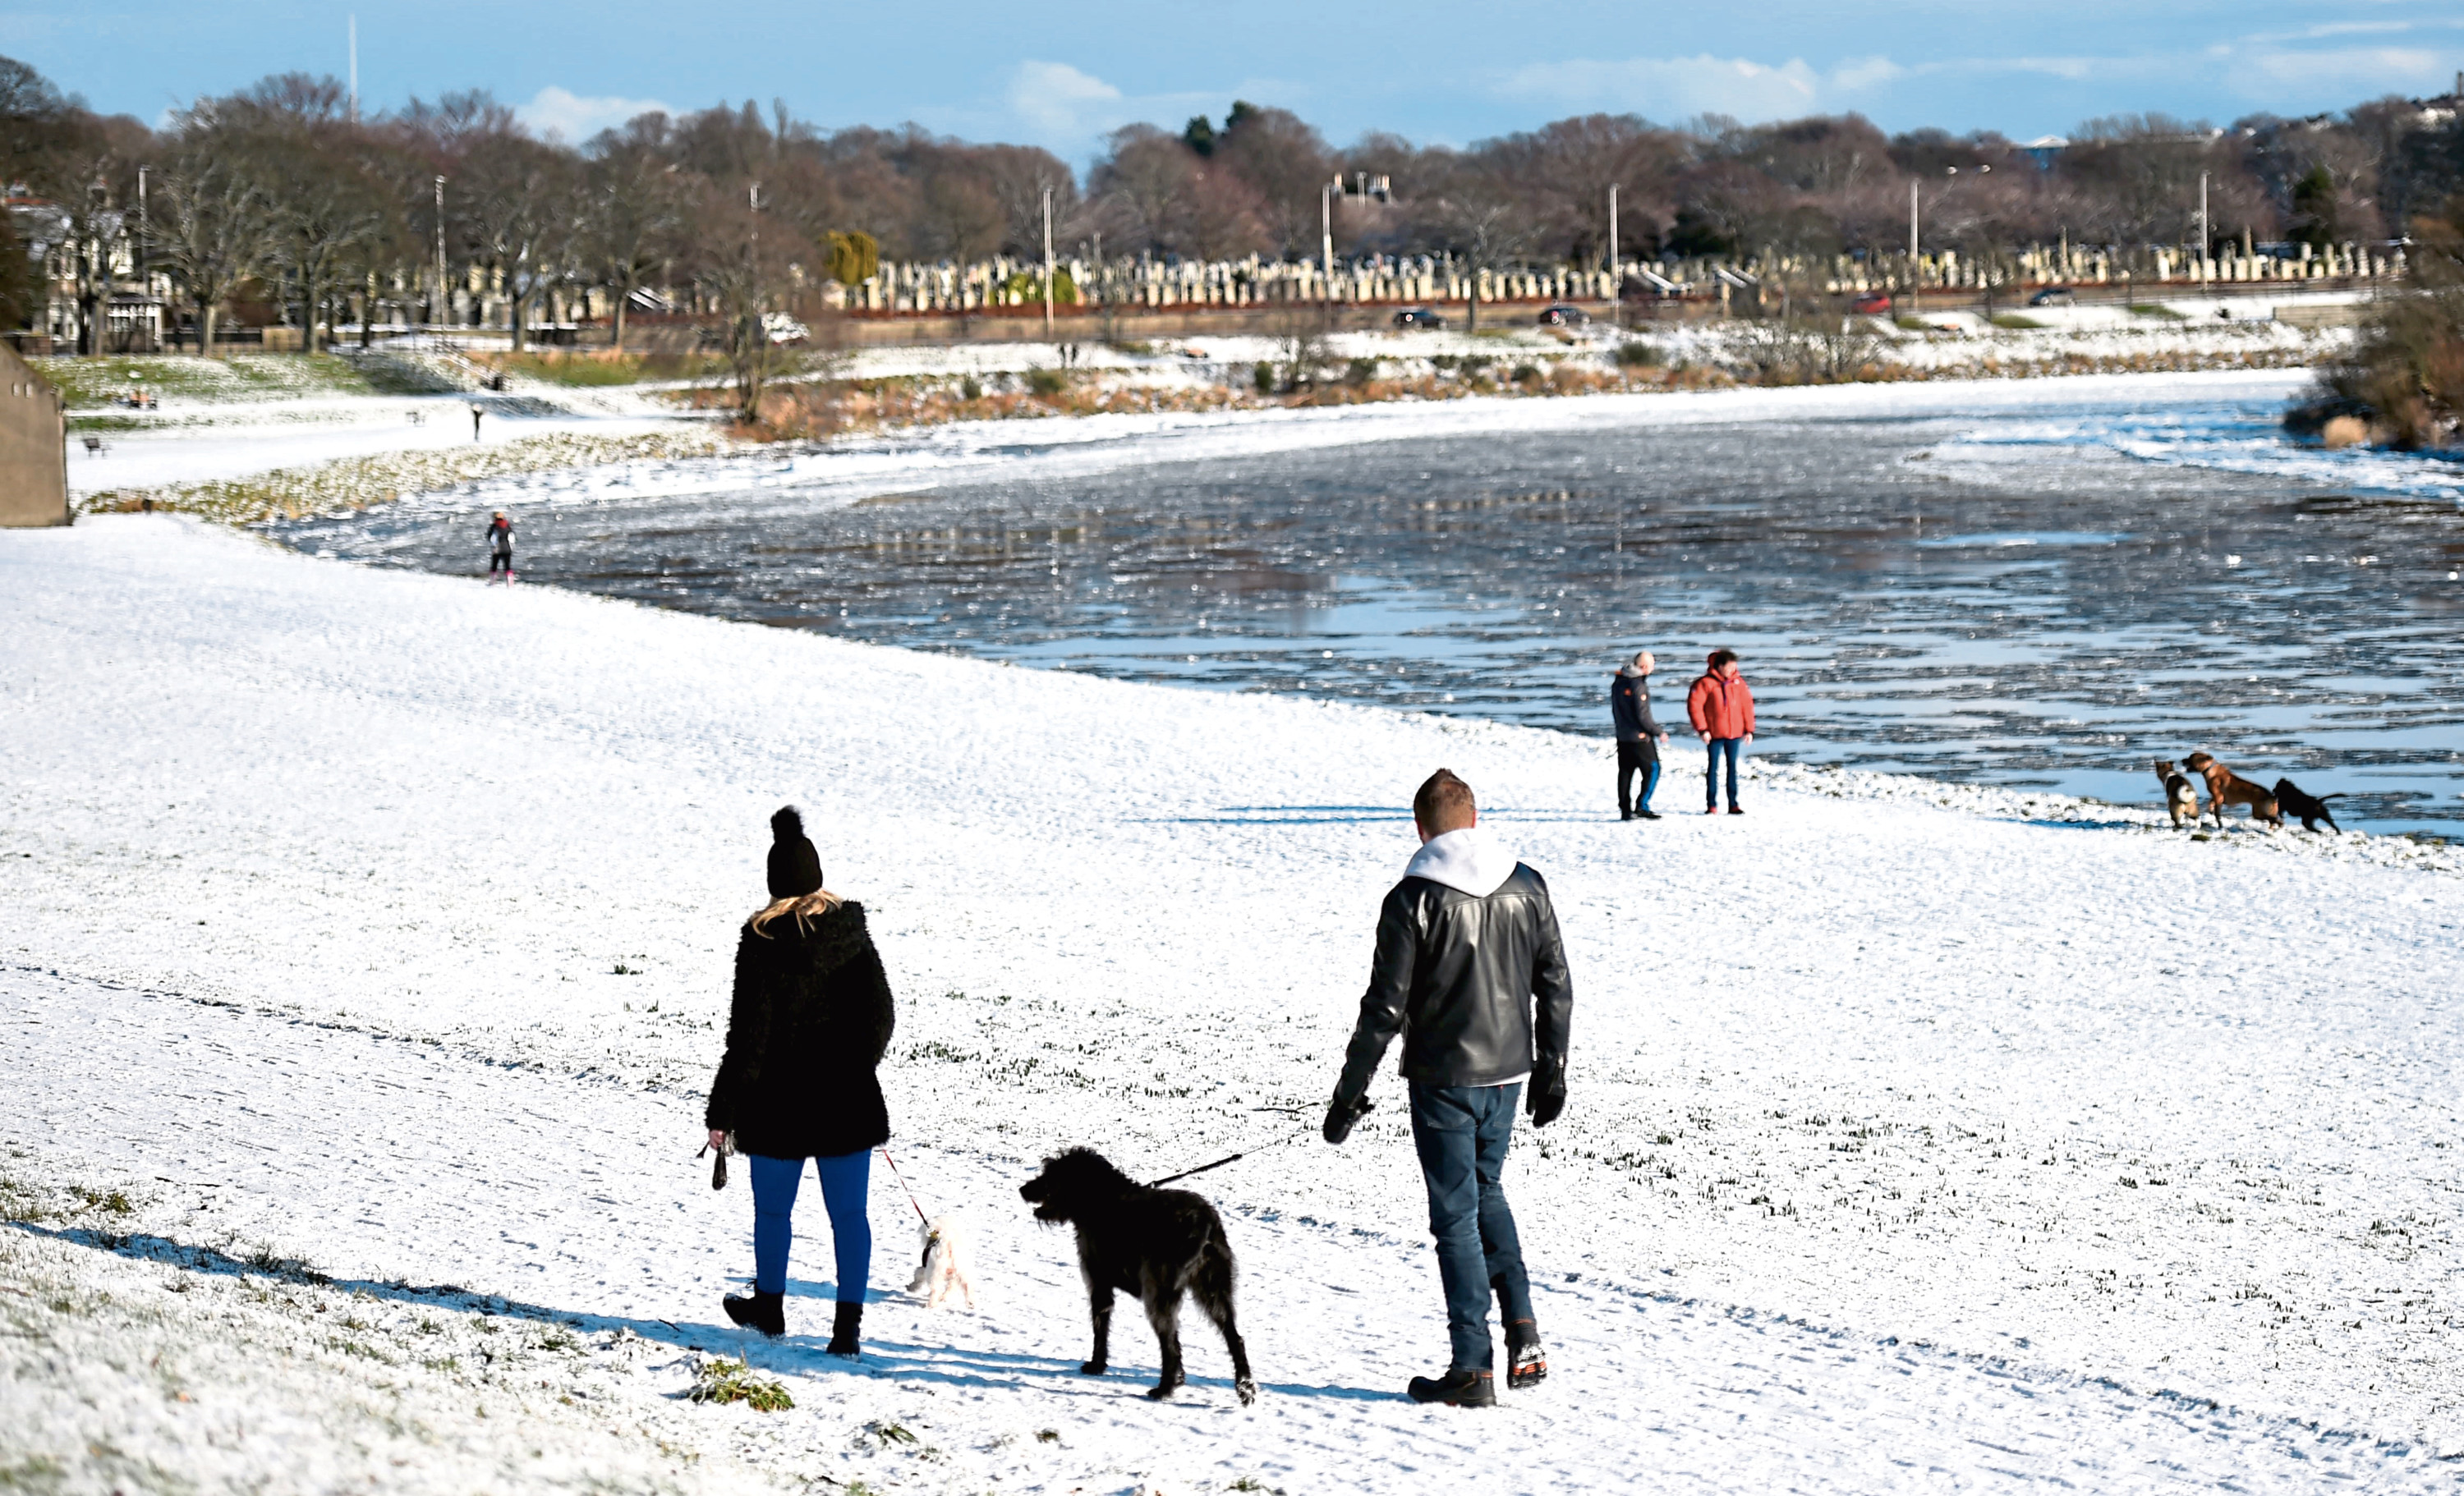 The north-east is unlikely to see scenes like these at Christmas